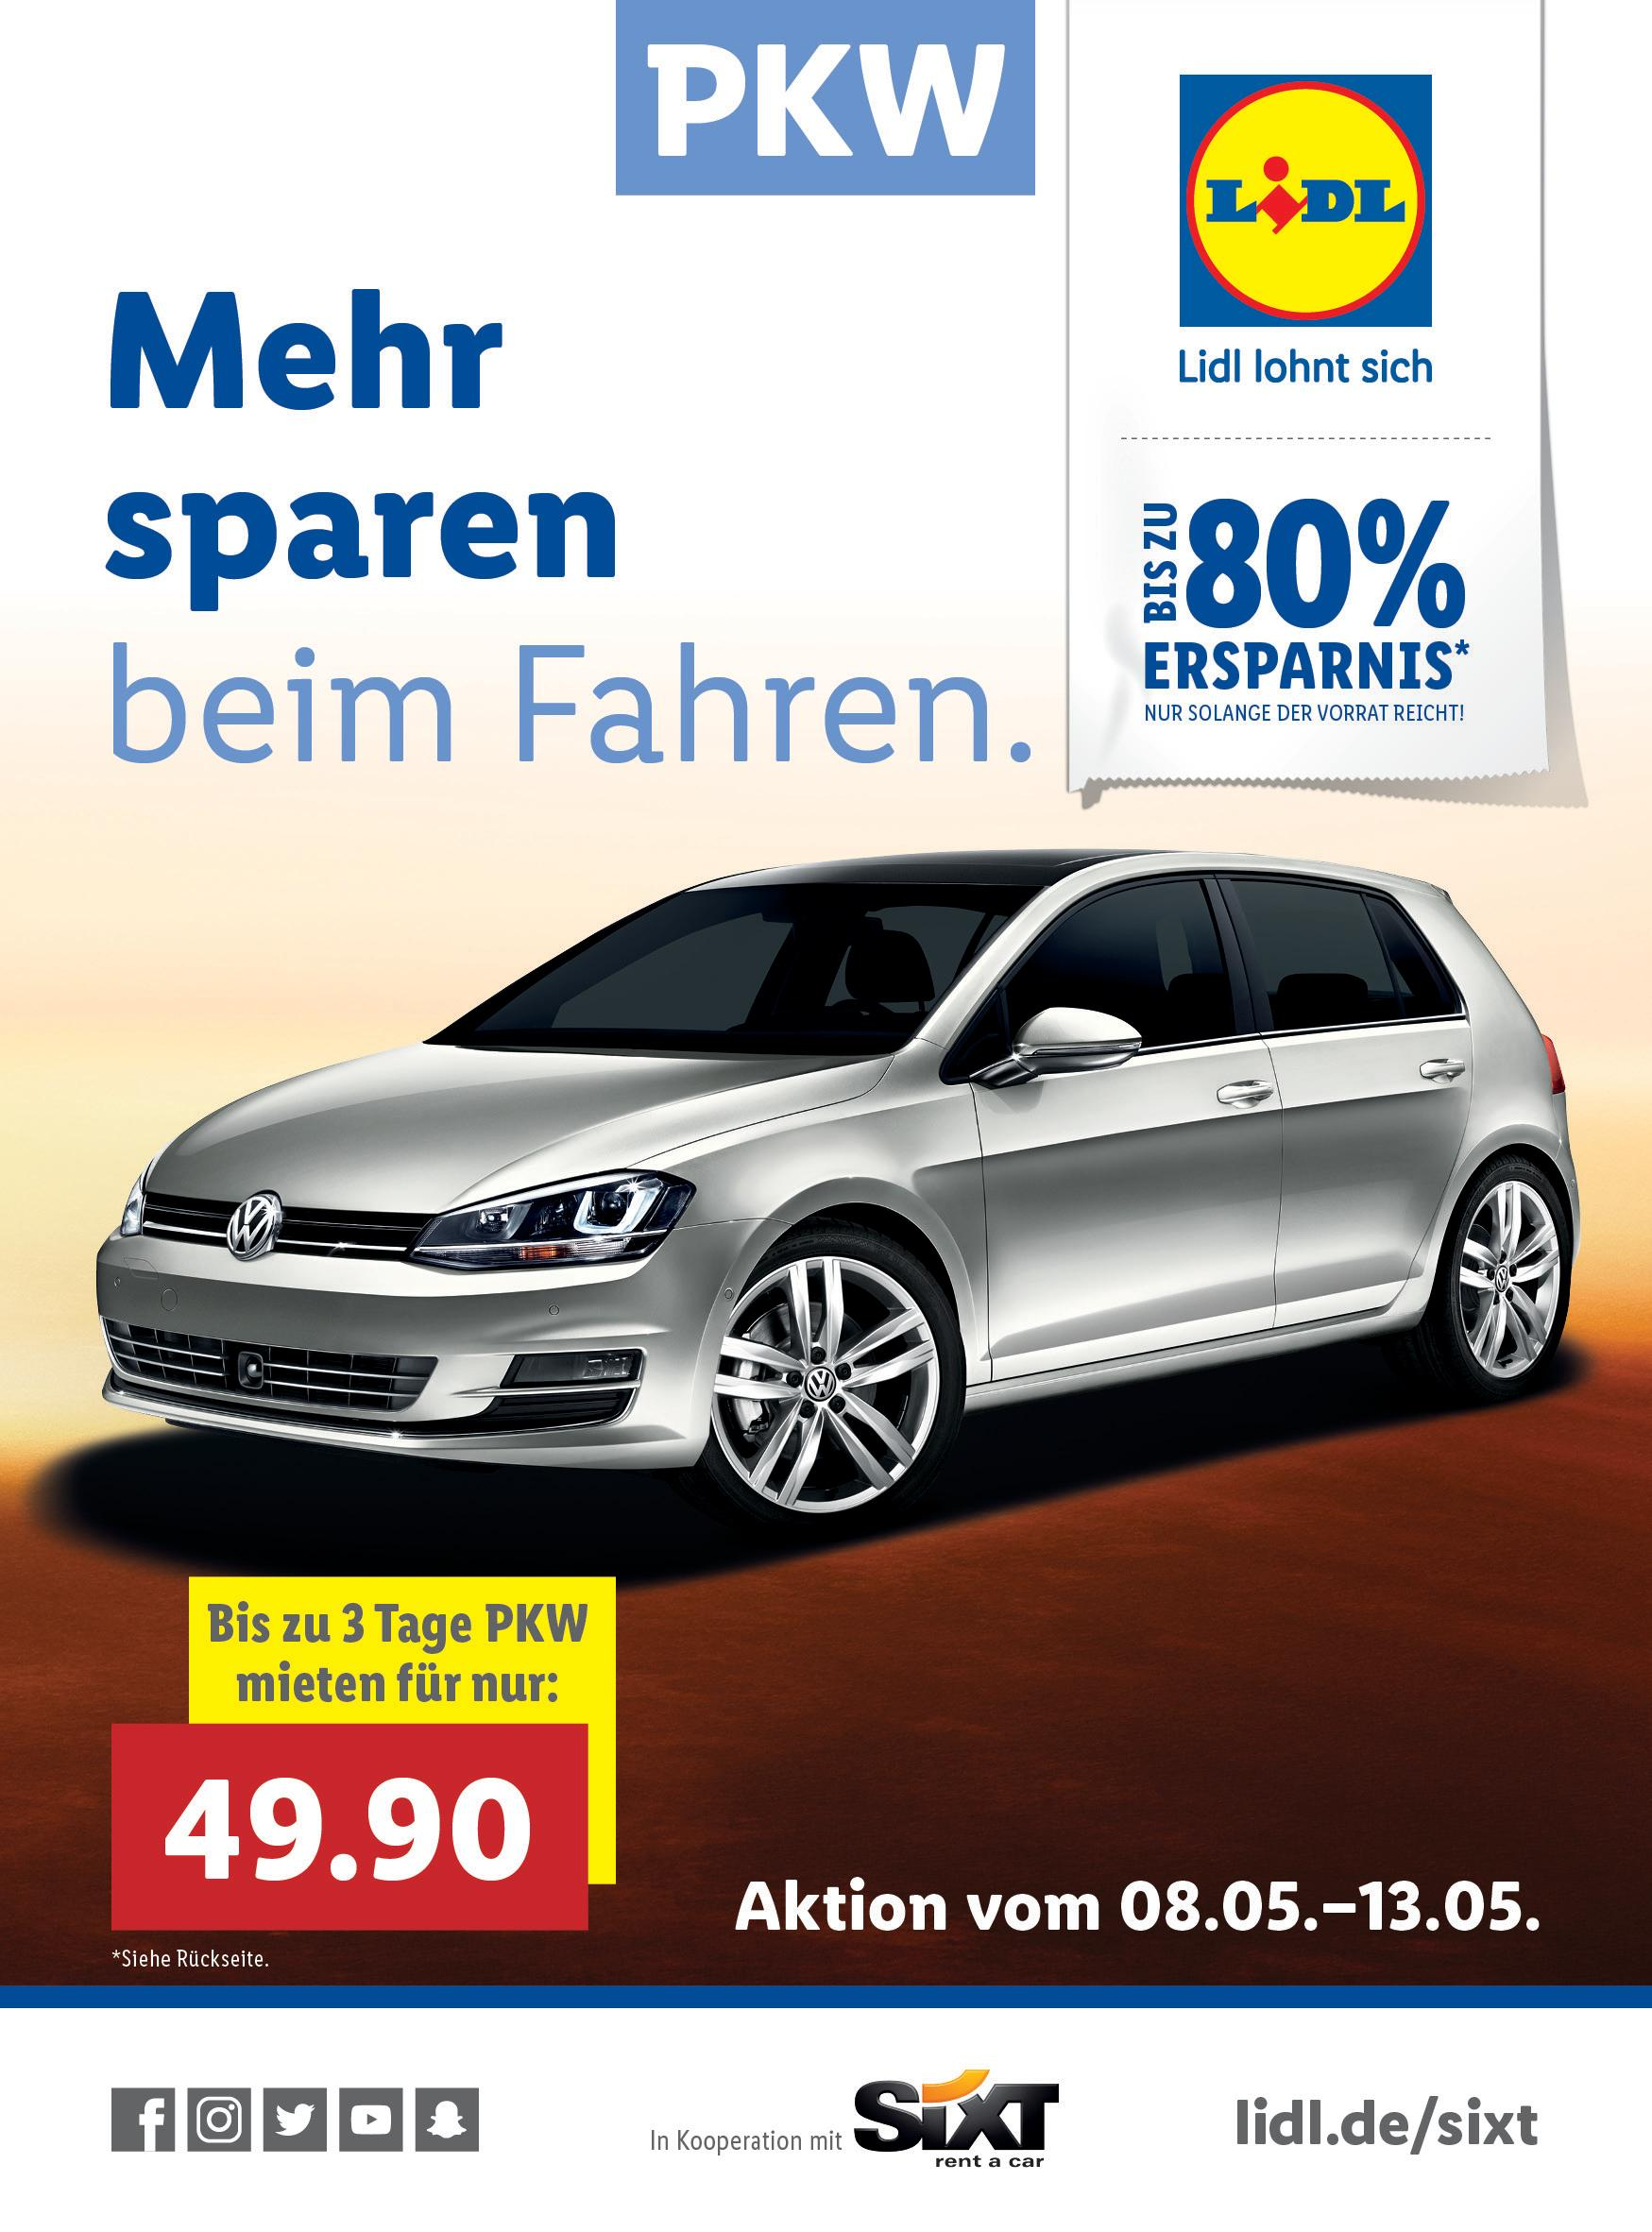 lidl und sixt machen mobil f r weniger als 50 euro. Black Bedroom Furniture Sets. Home Design Ideas